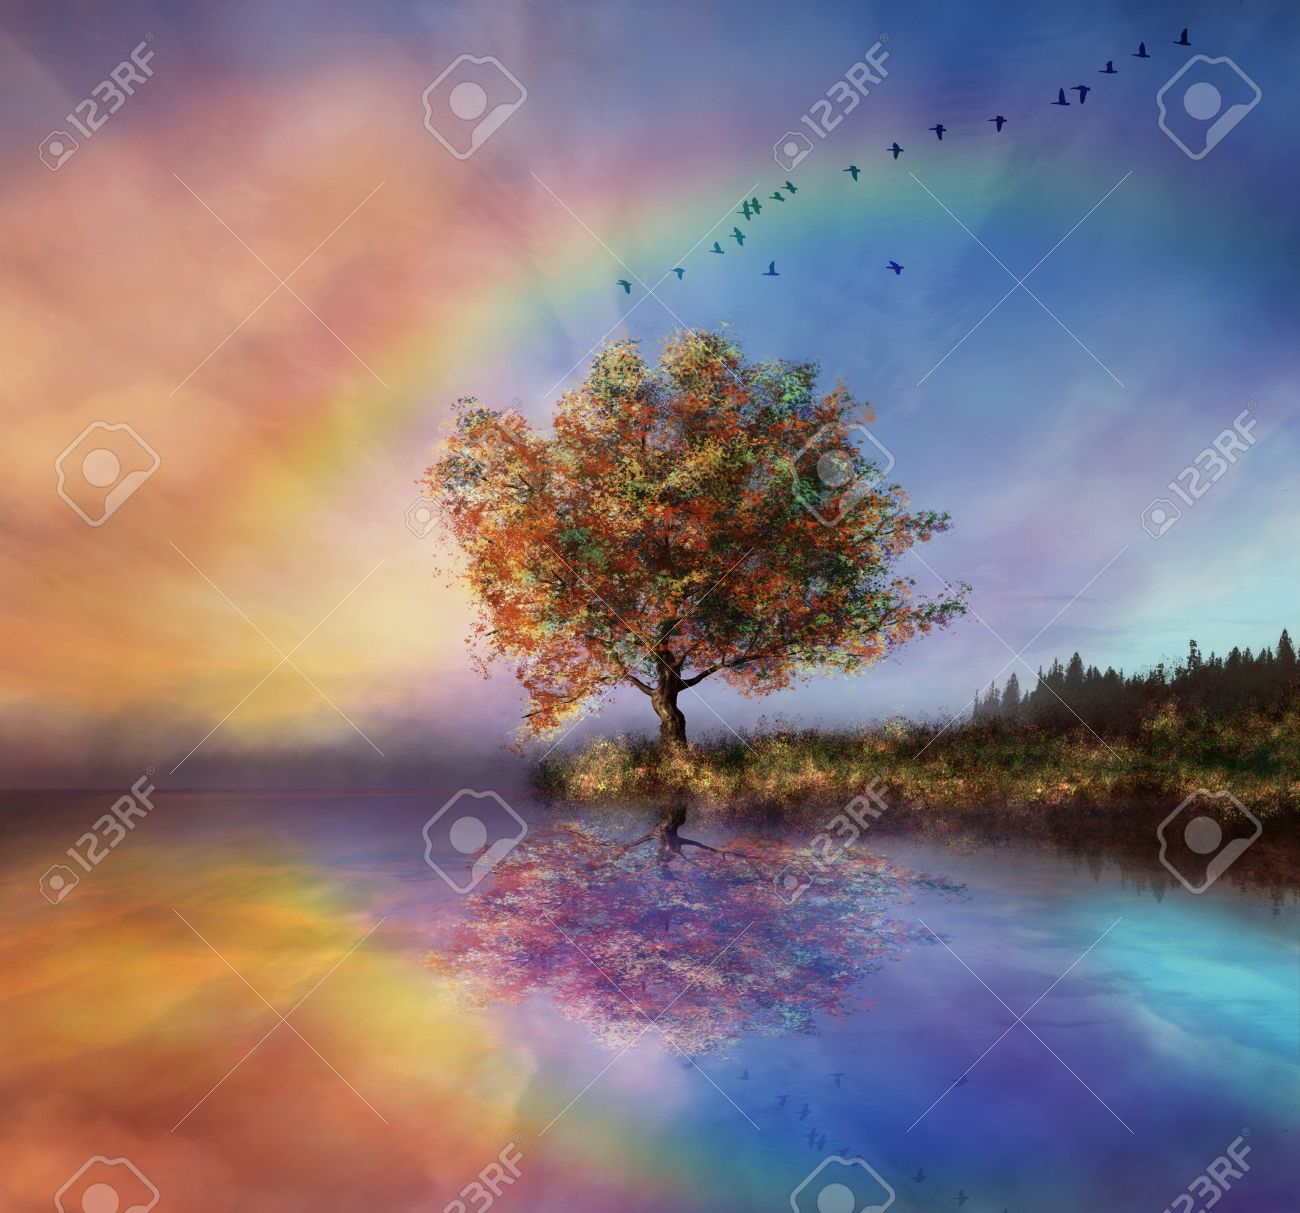 manipulated landscape with a flowered tree and rainbow - 27612944